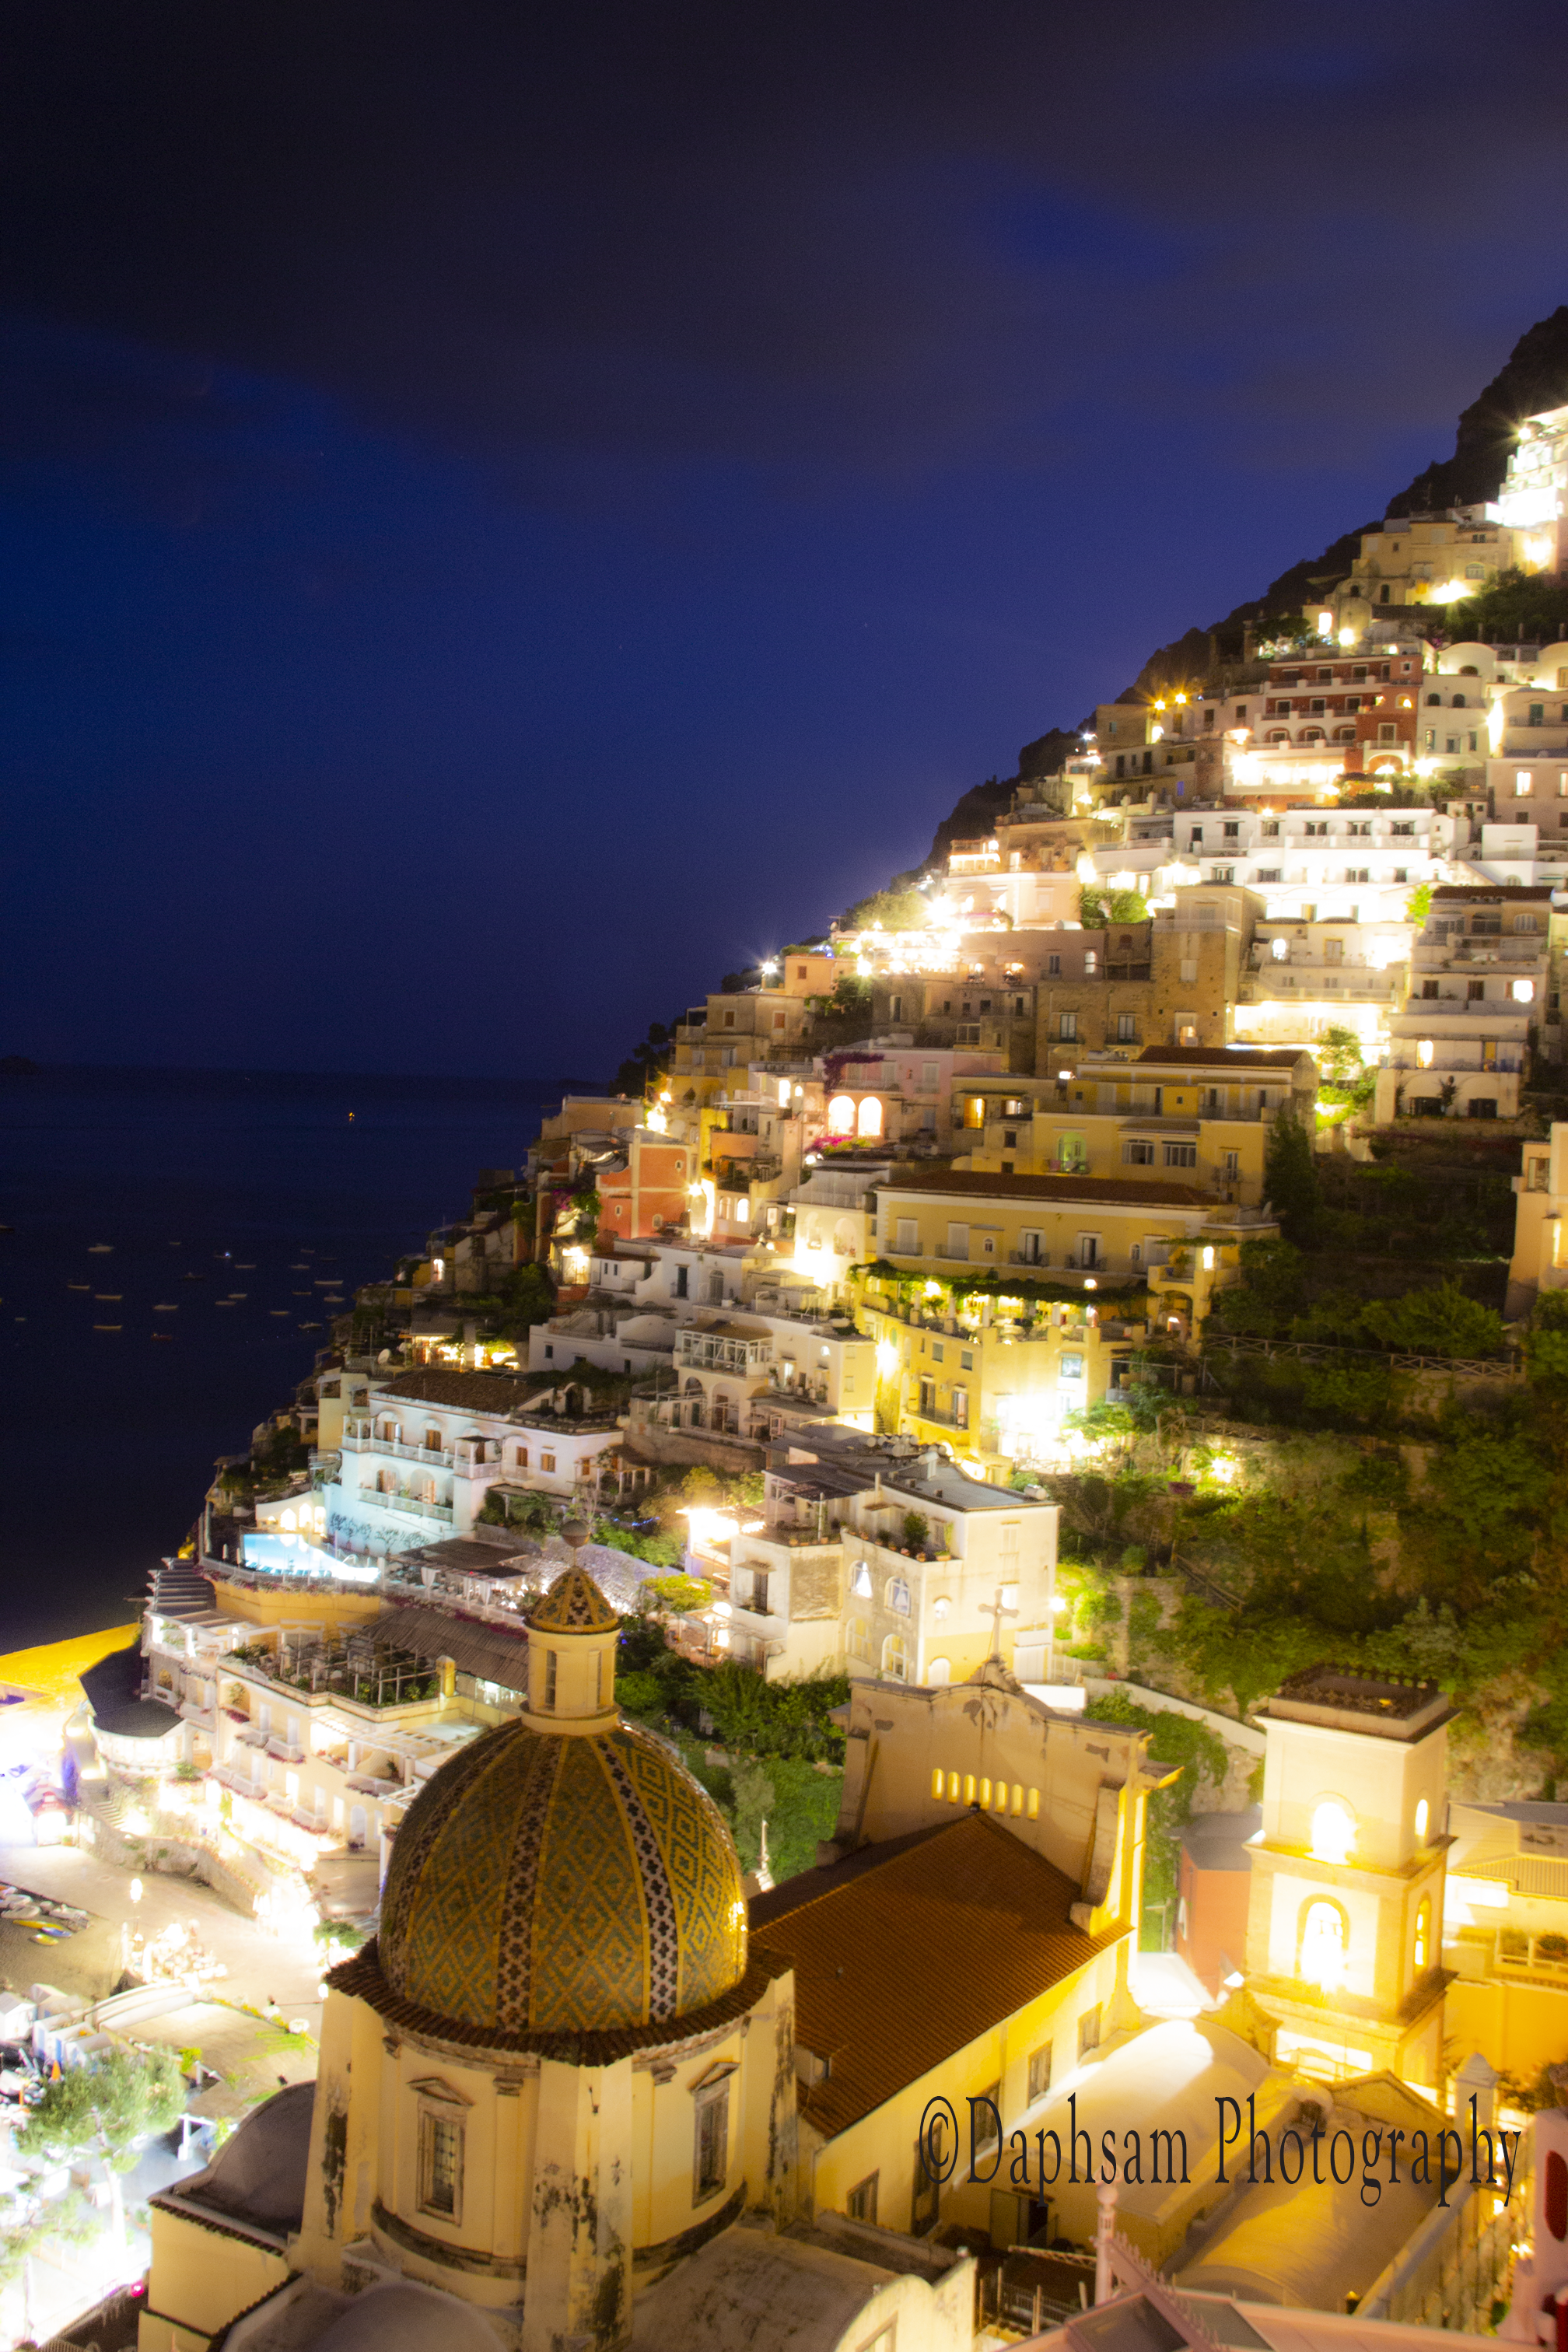 Nightitme in Positano